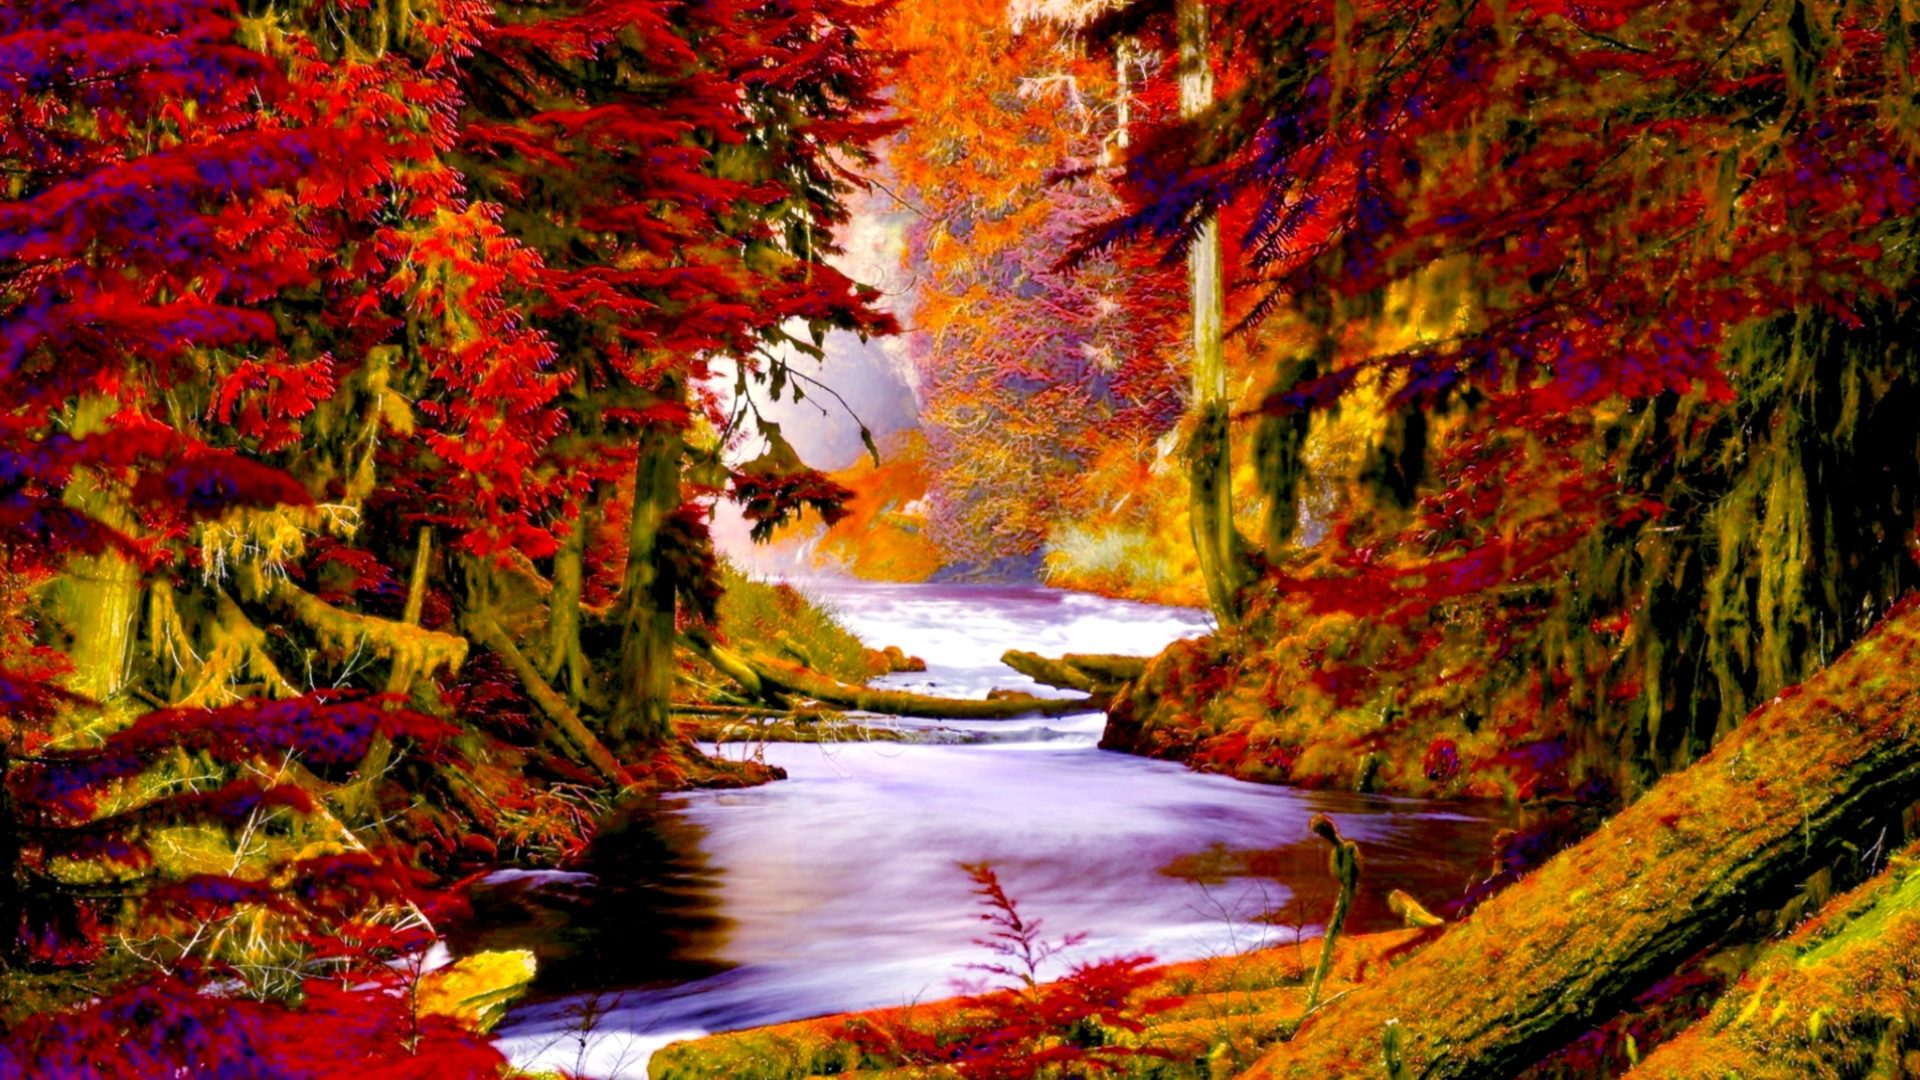 Fall Foliage Wallpaper For Iphone Autumn Forest Creek Wide Wallpaper 503570 Wallpapers13 Com